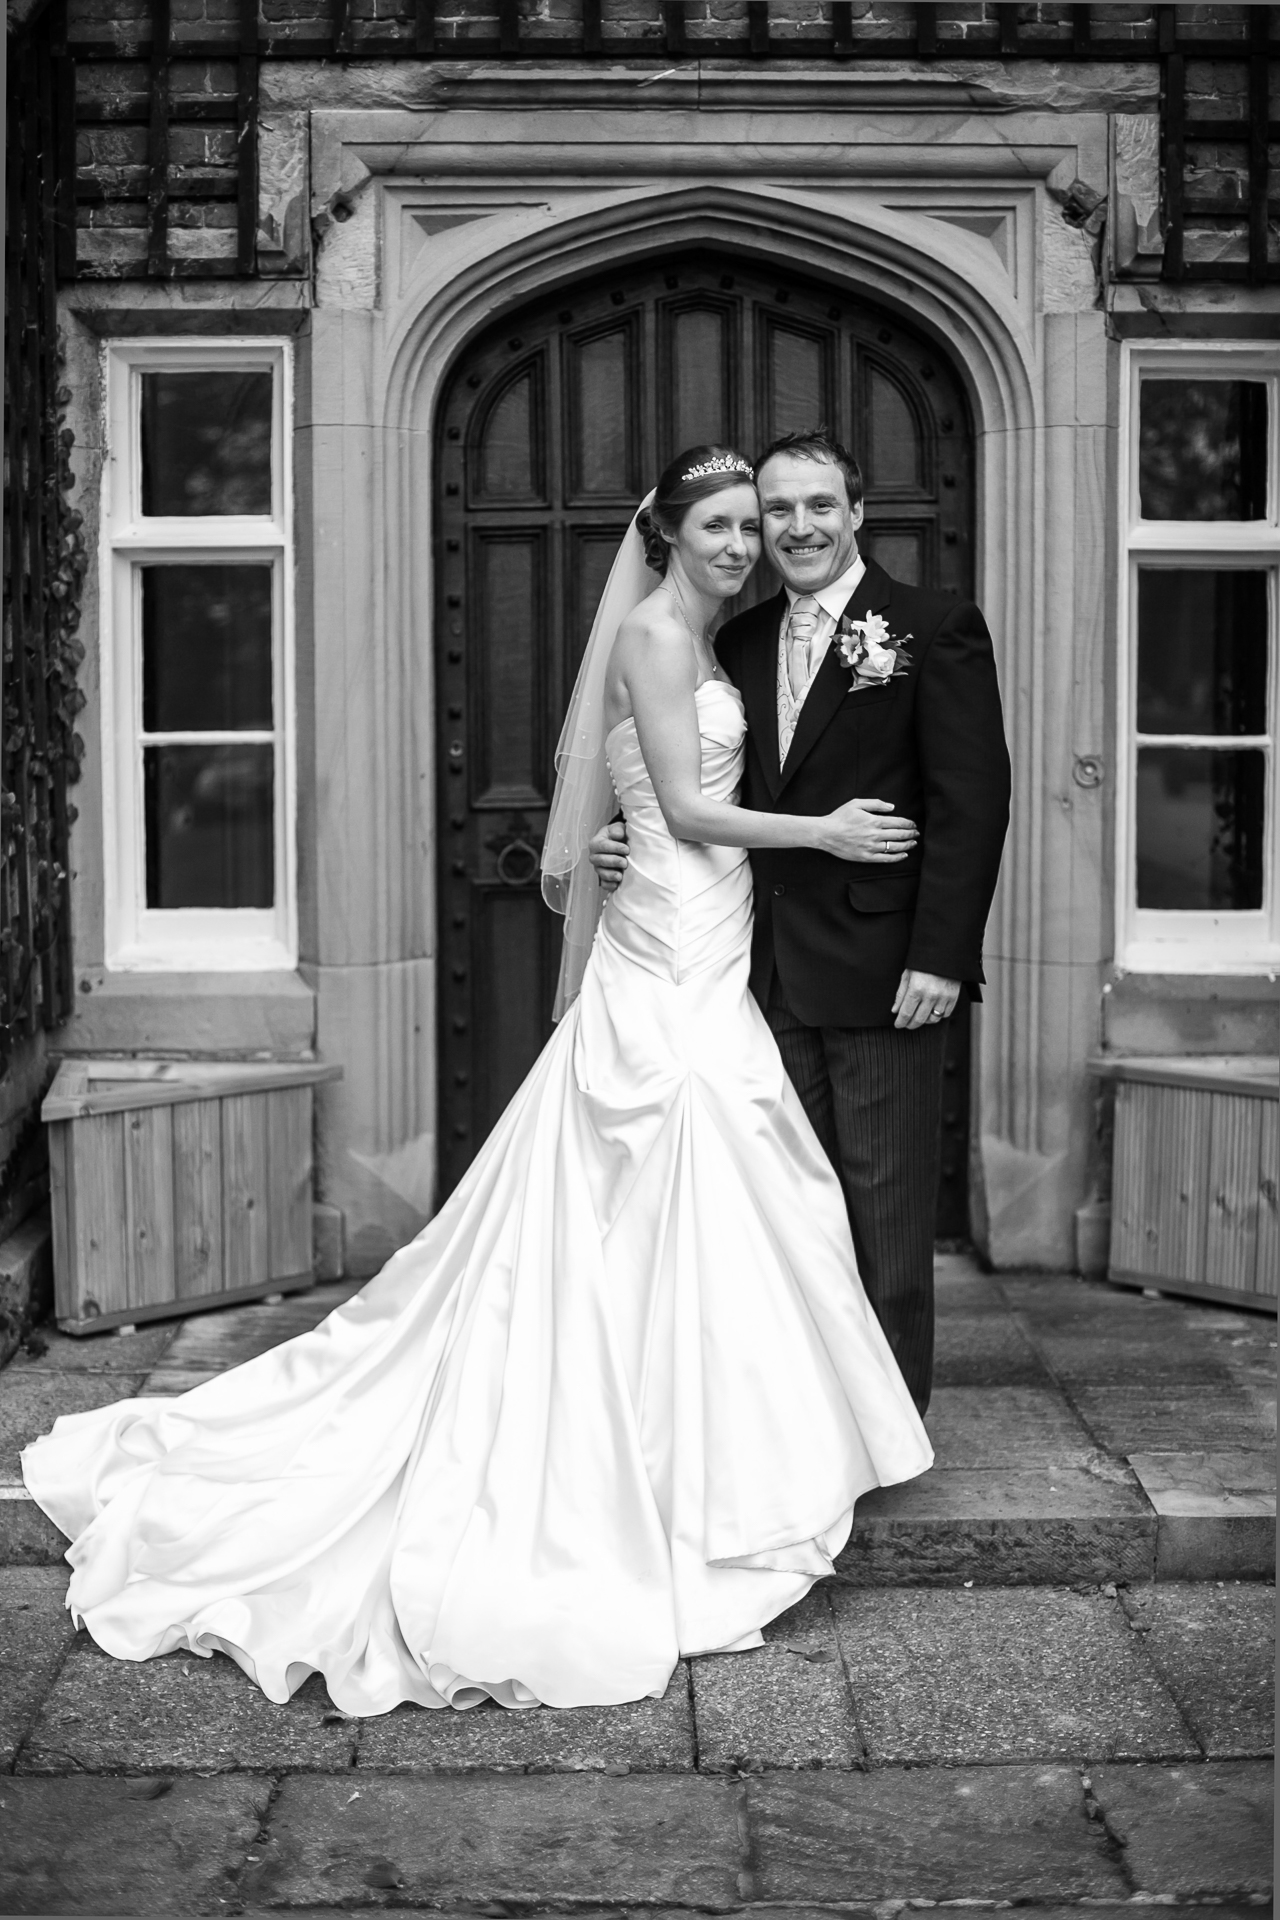 Rachel & Graham-Wedding-The Villa-Wrea Green-photo-013.jpg